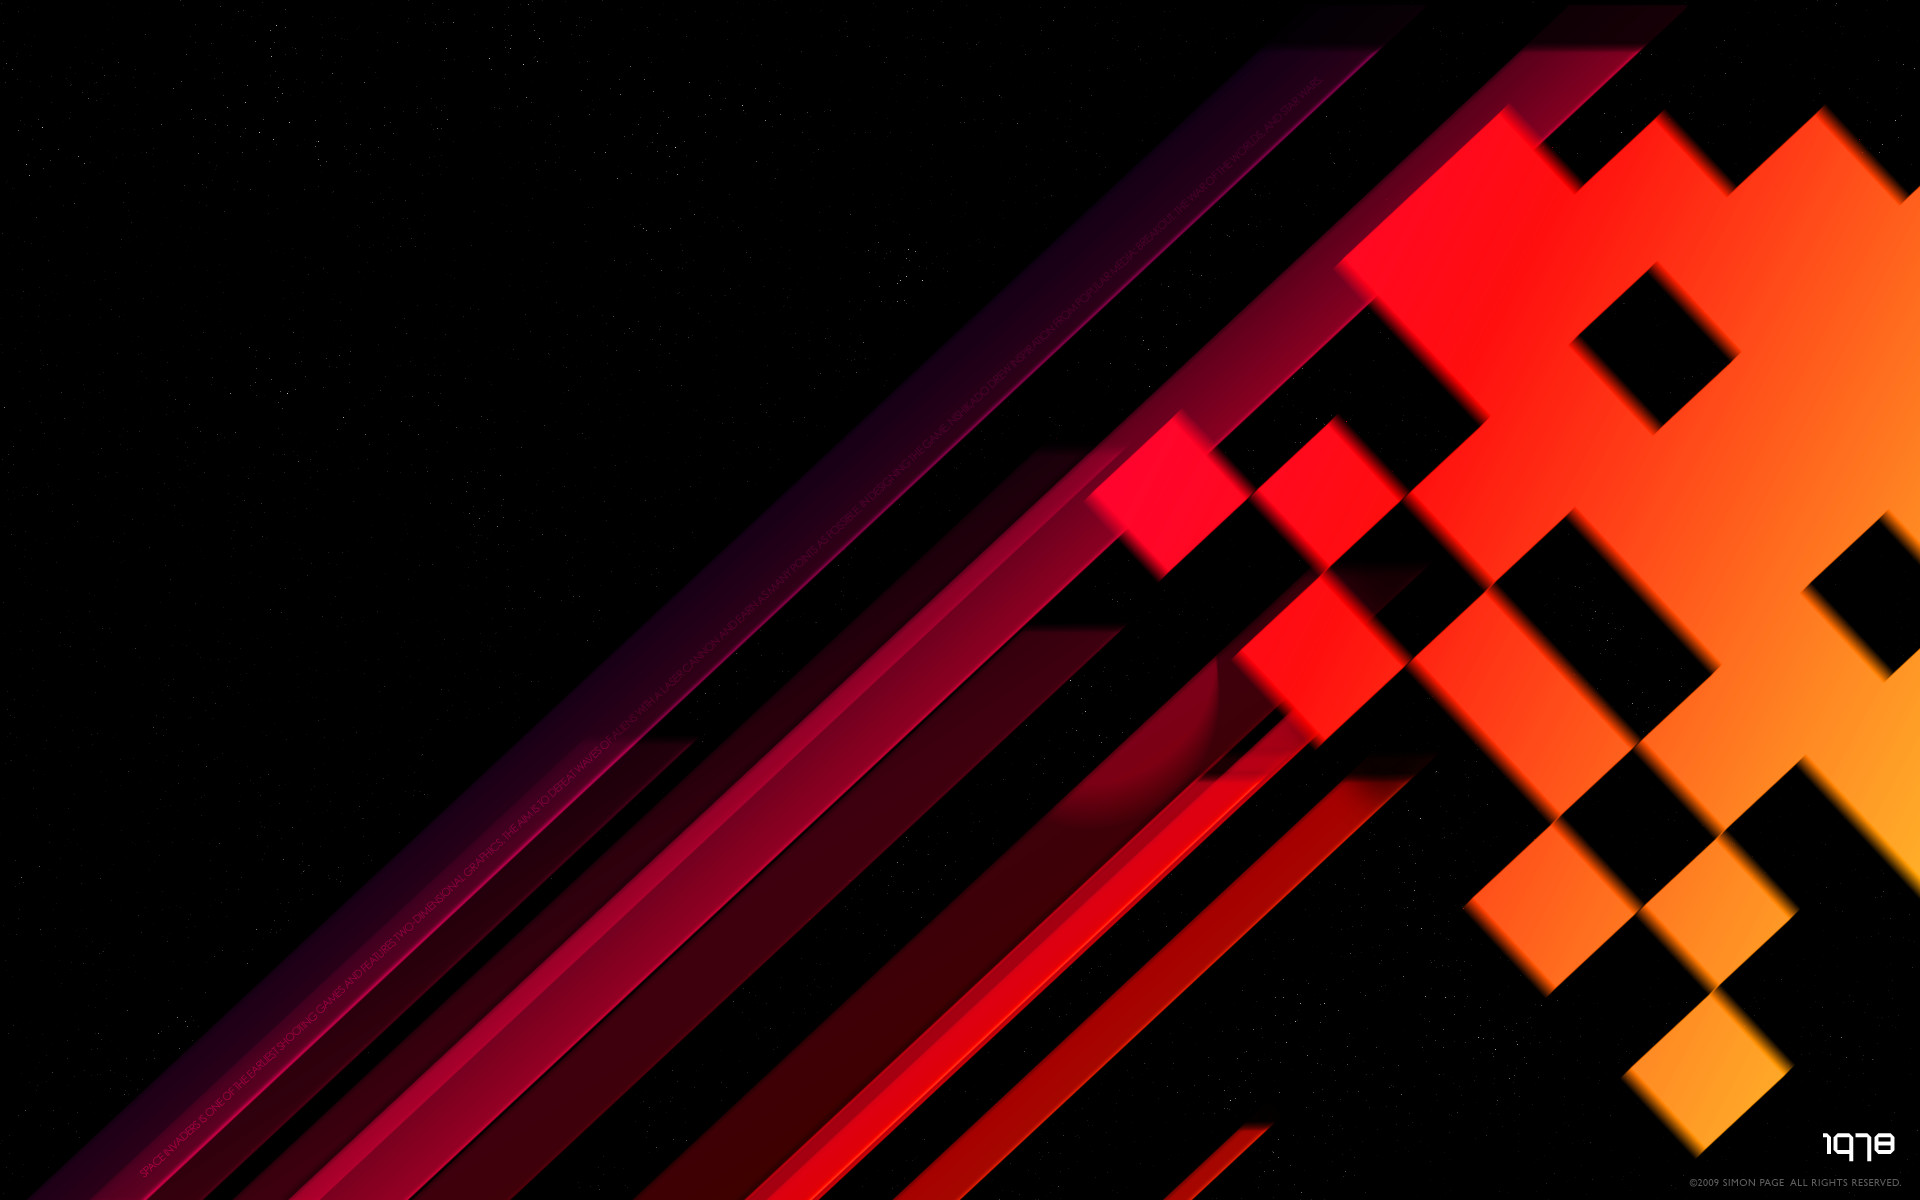 Old school retro Space Invaders desktop wallpaper by Simon Page